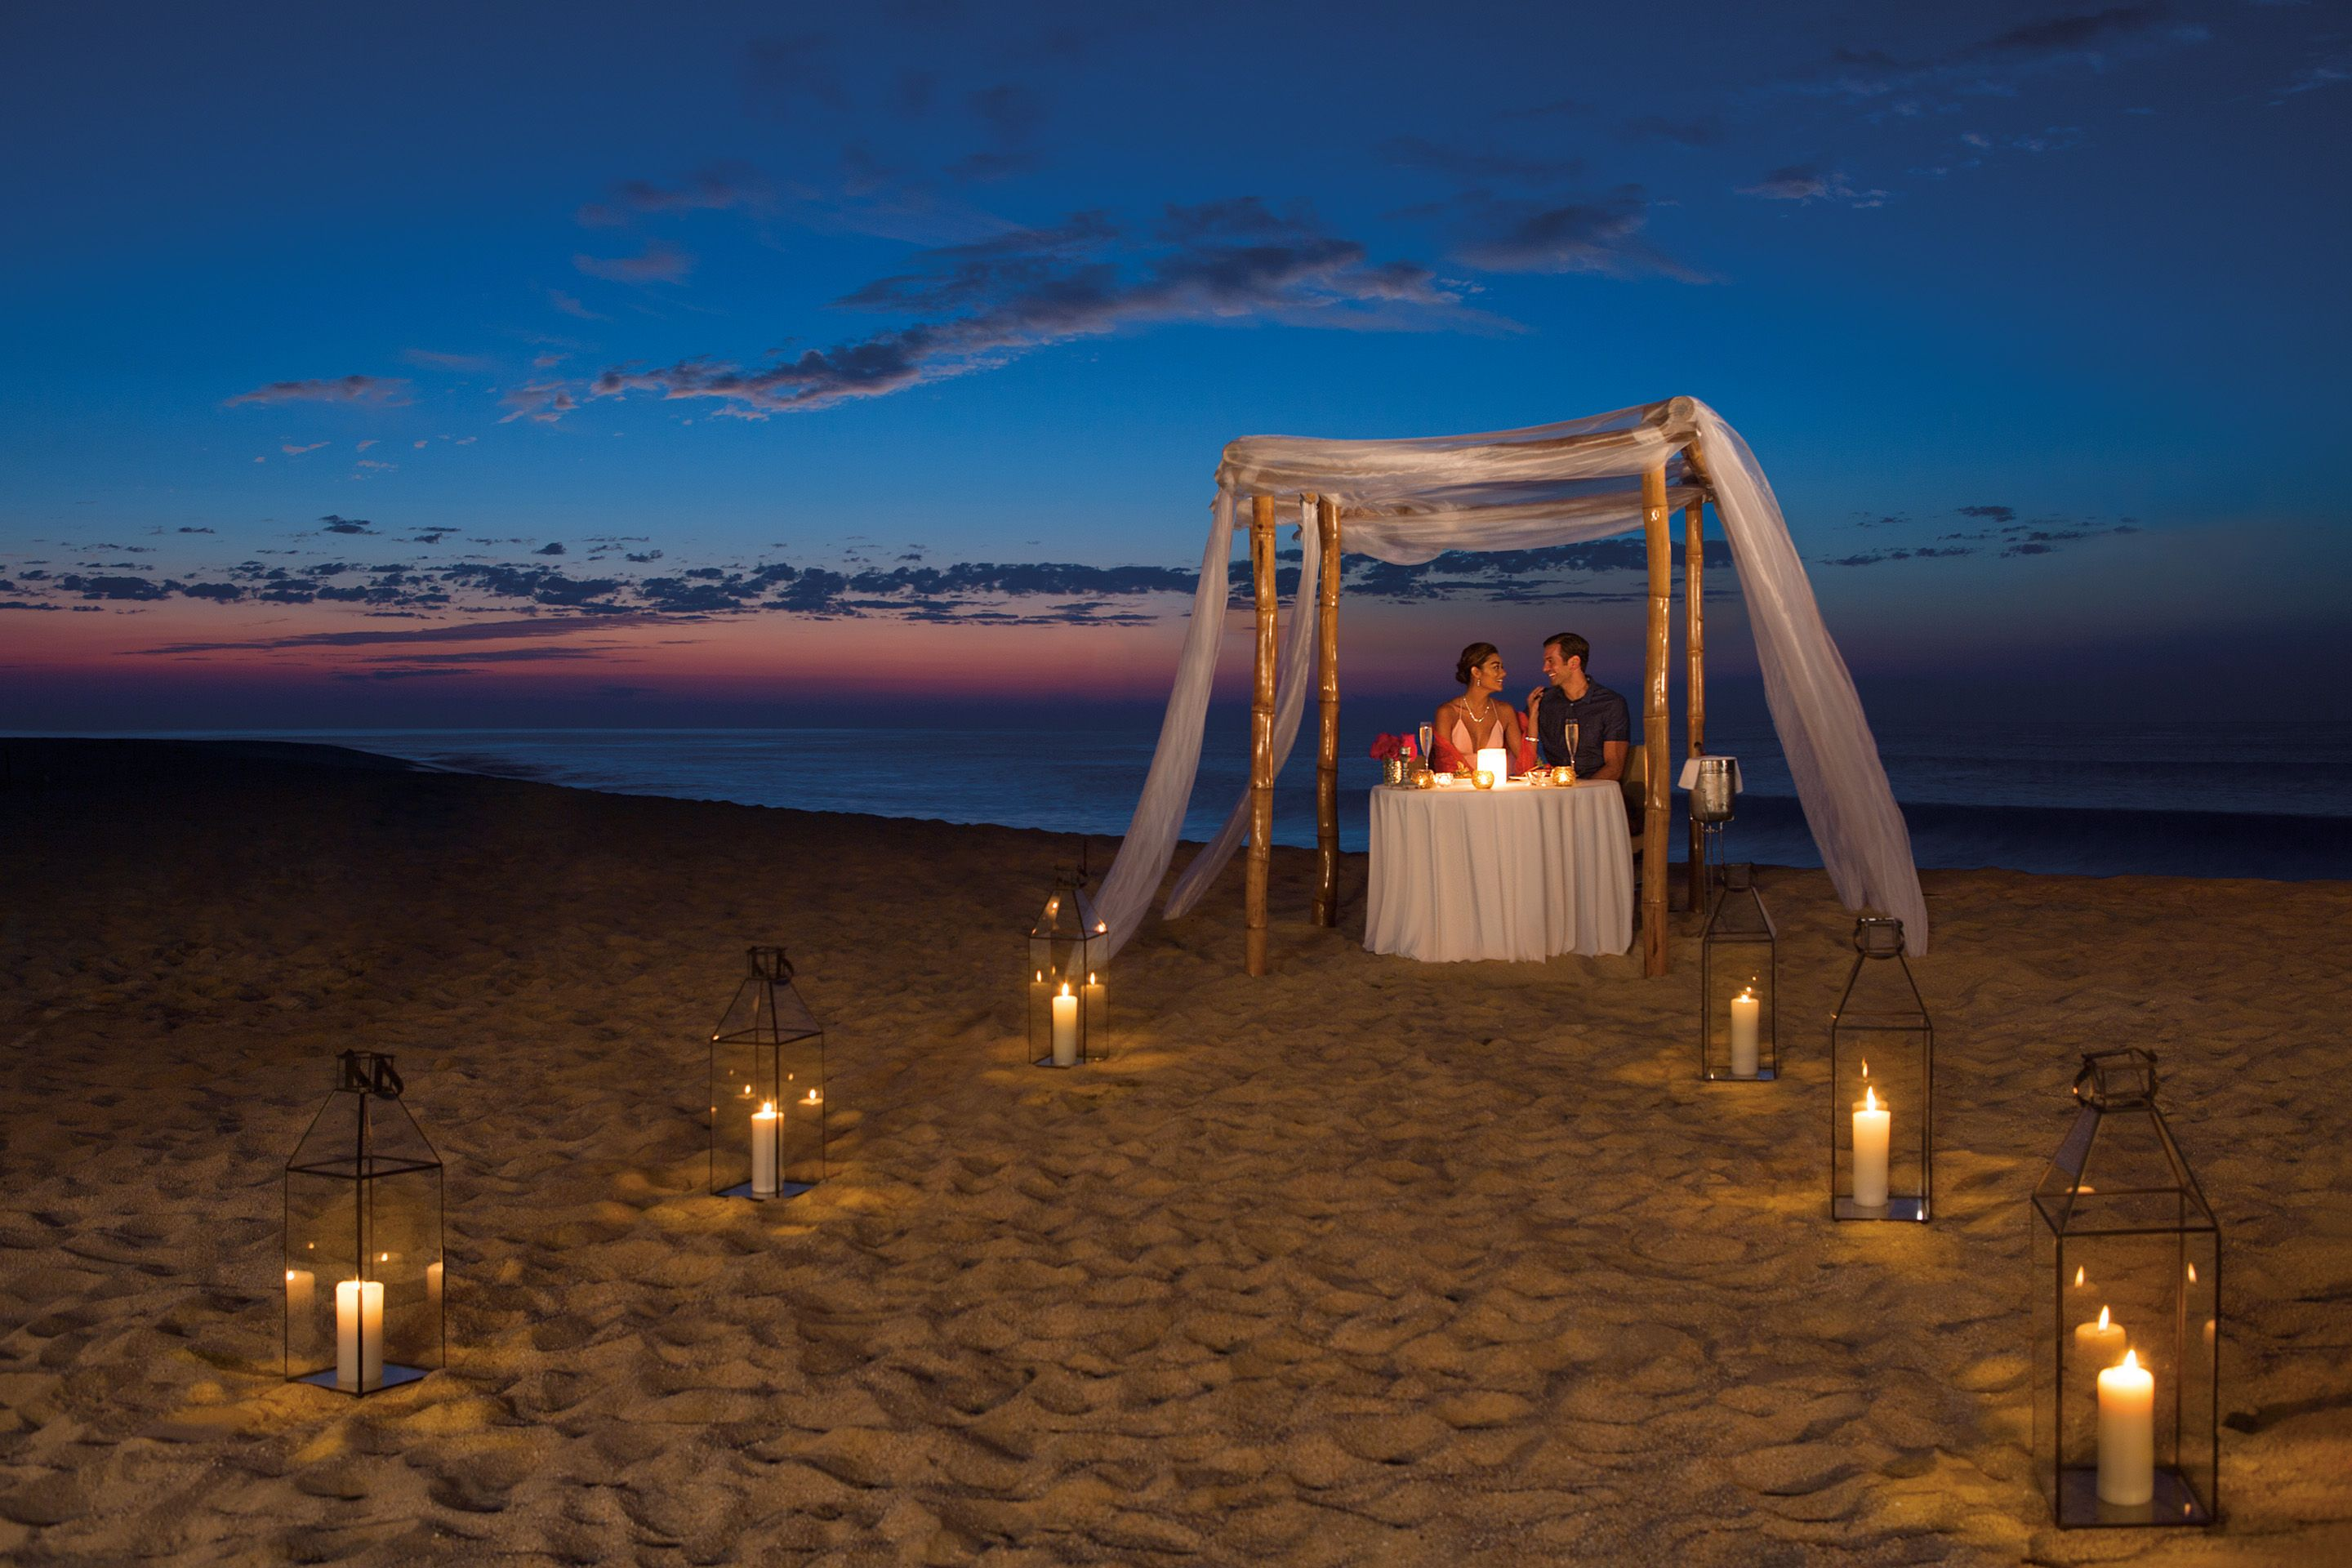 Romantic dinner setup on the beach at night